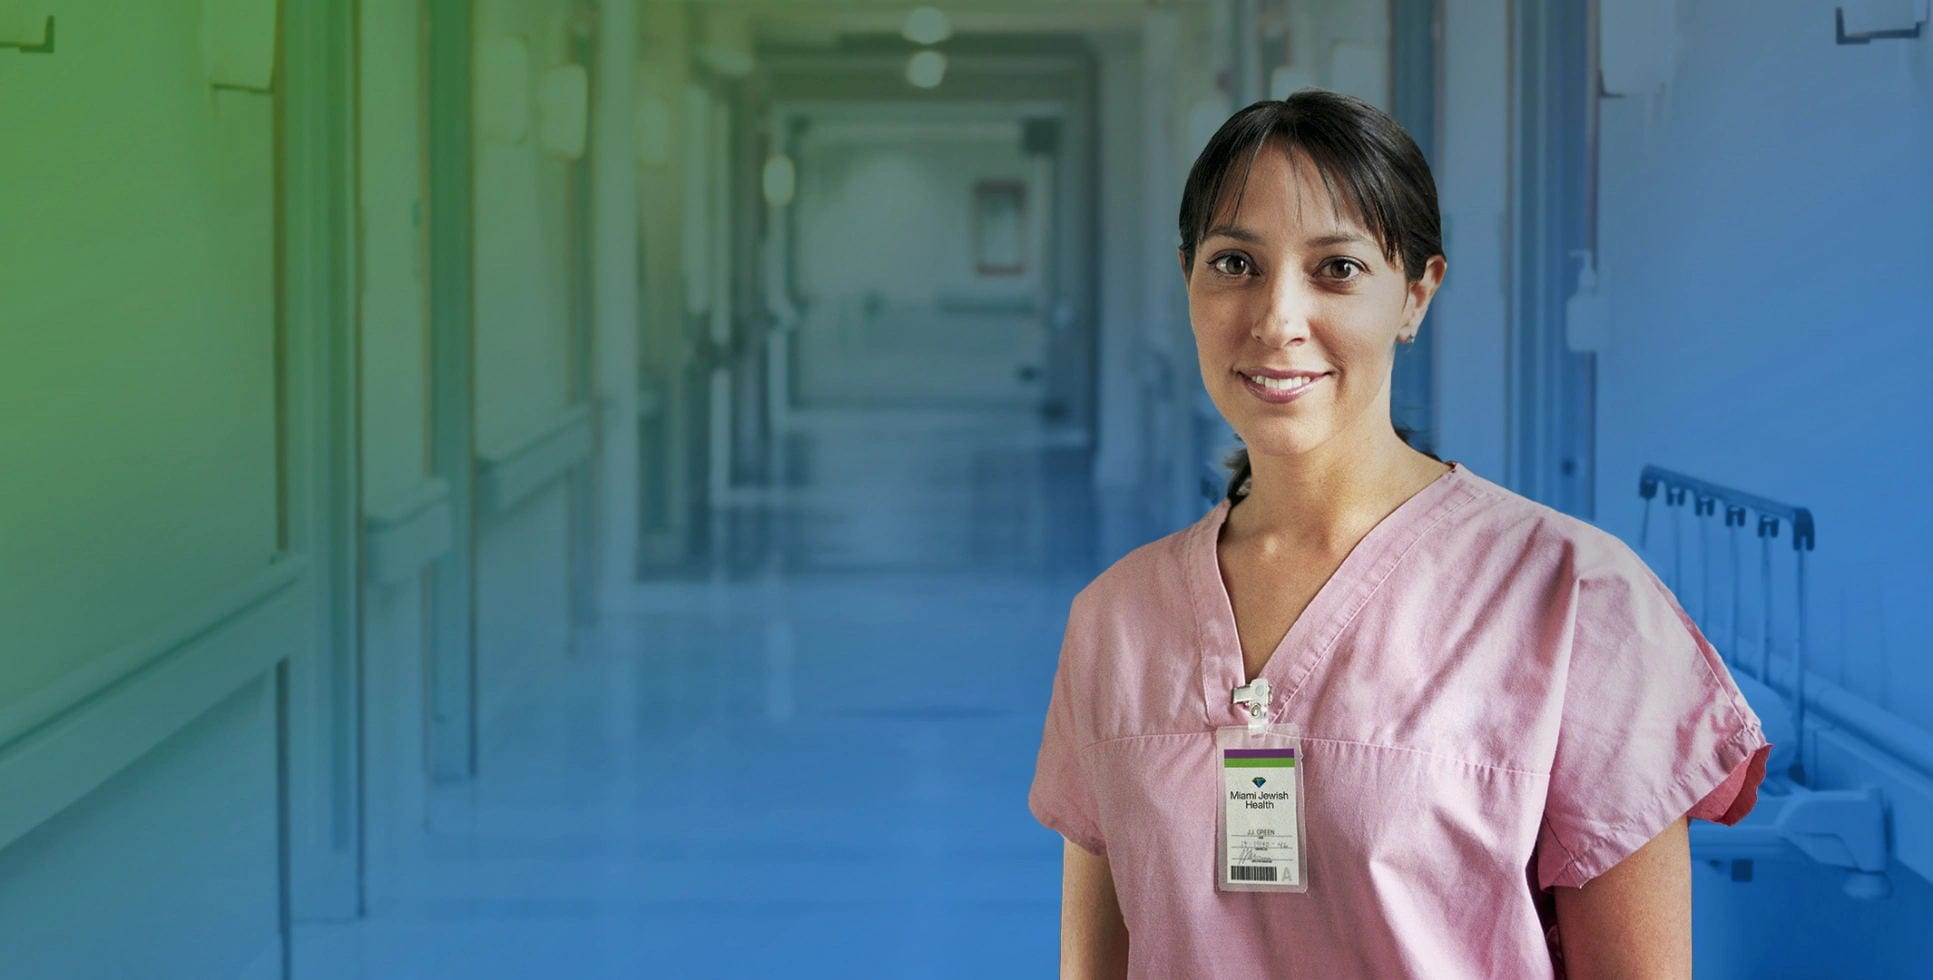 a female nurse